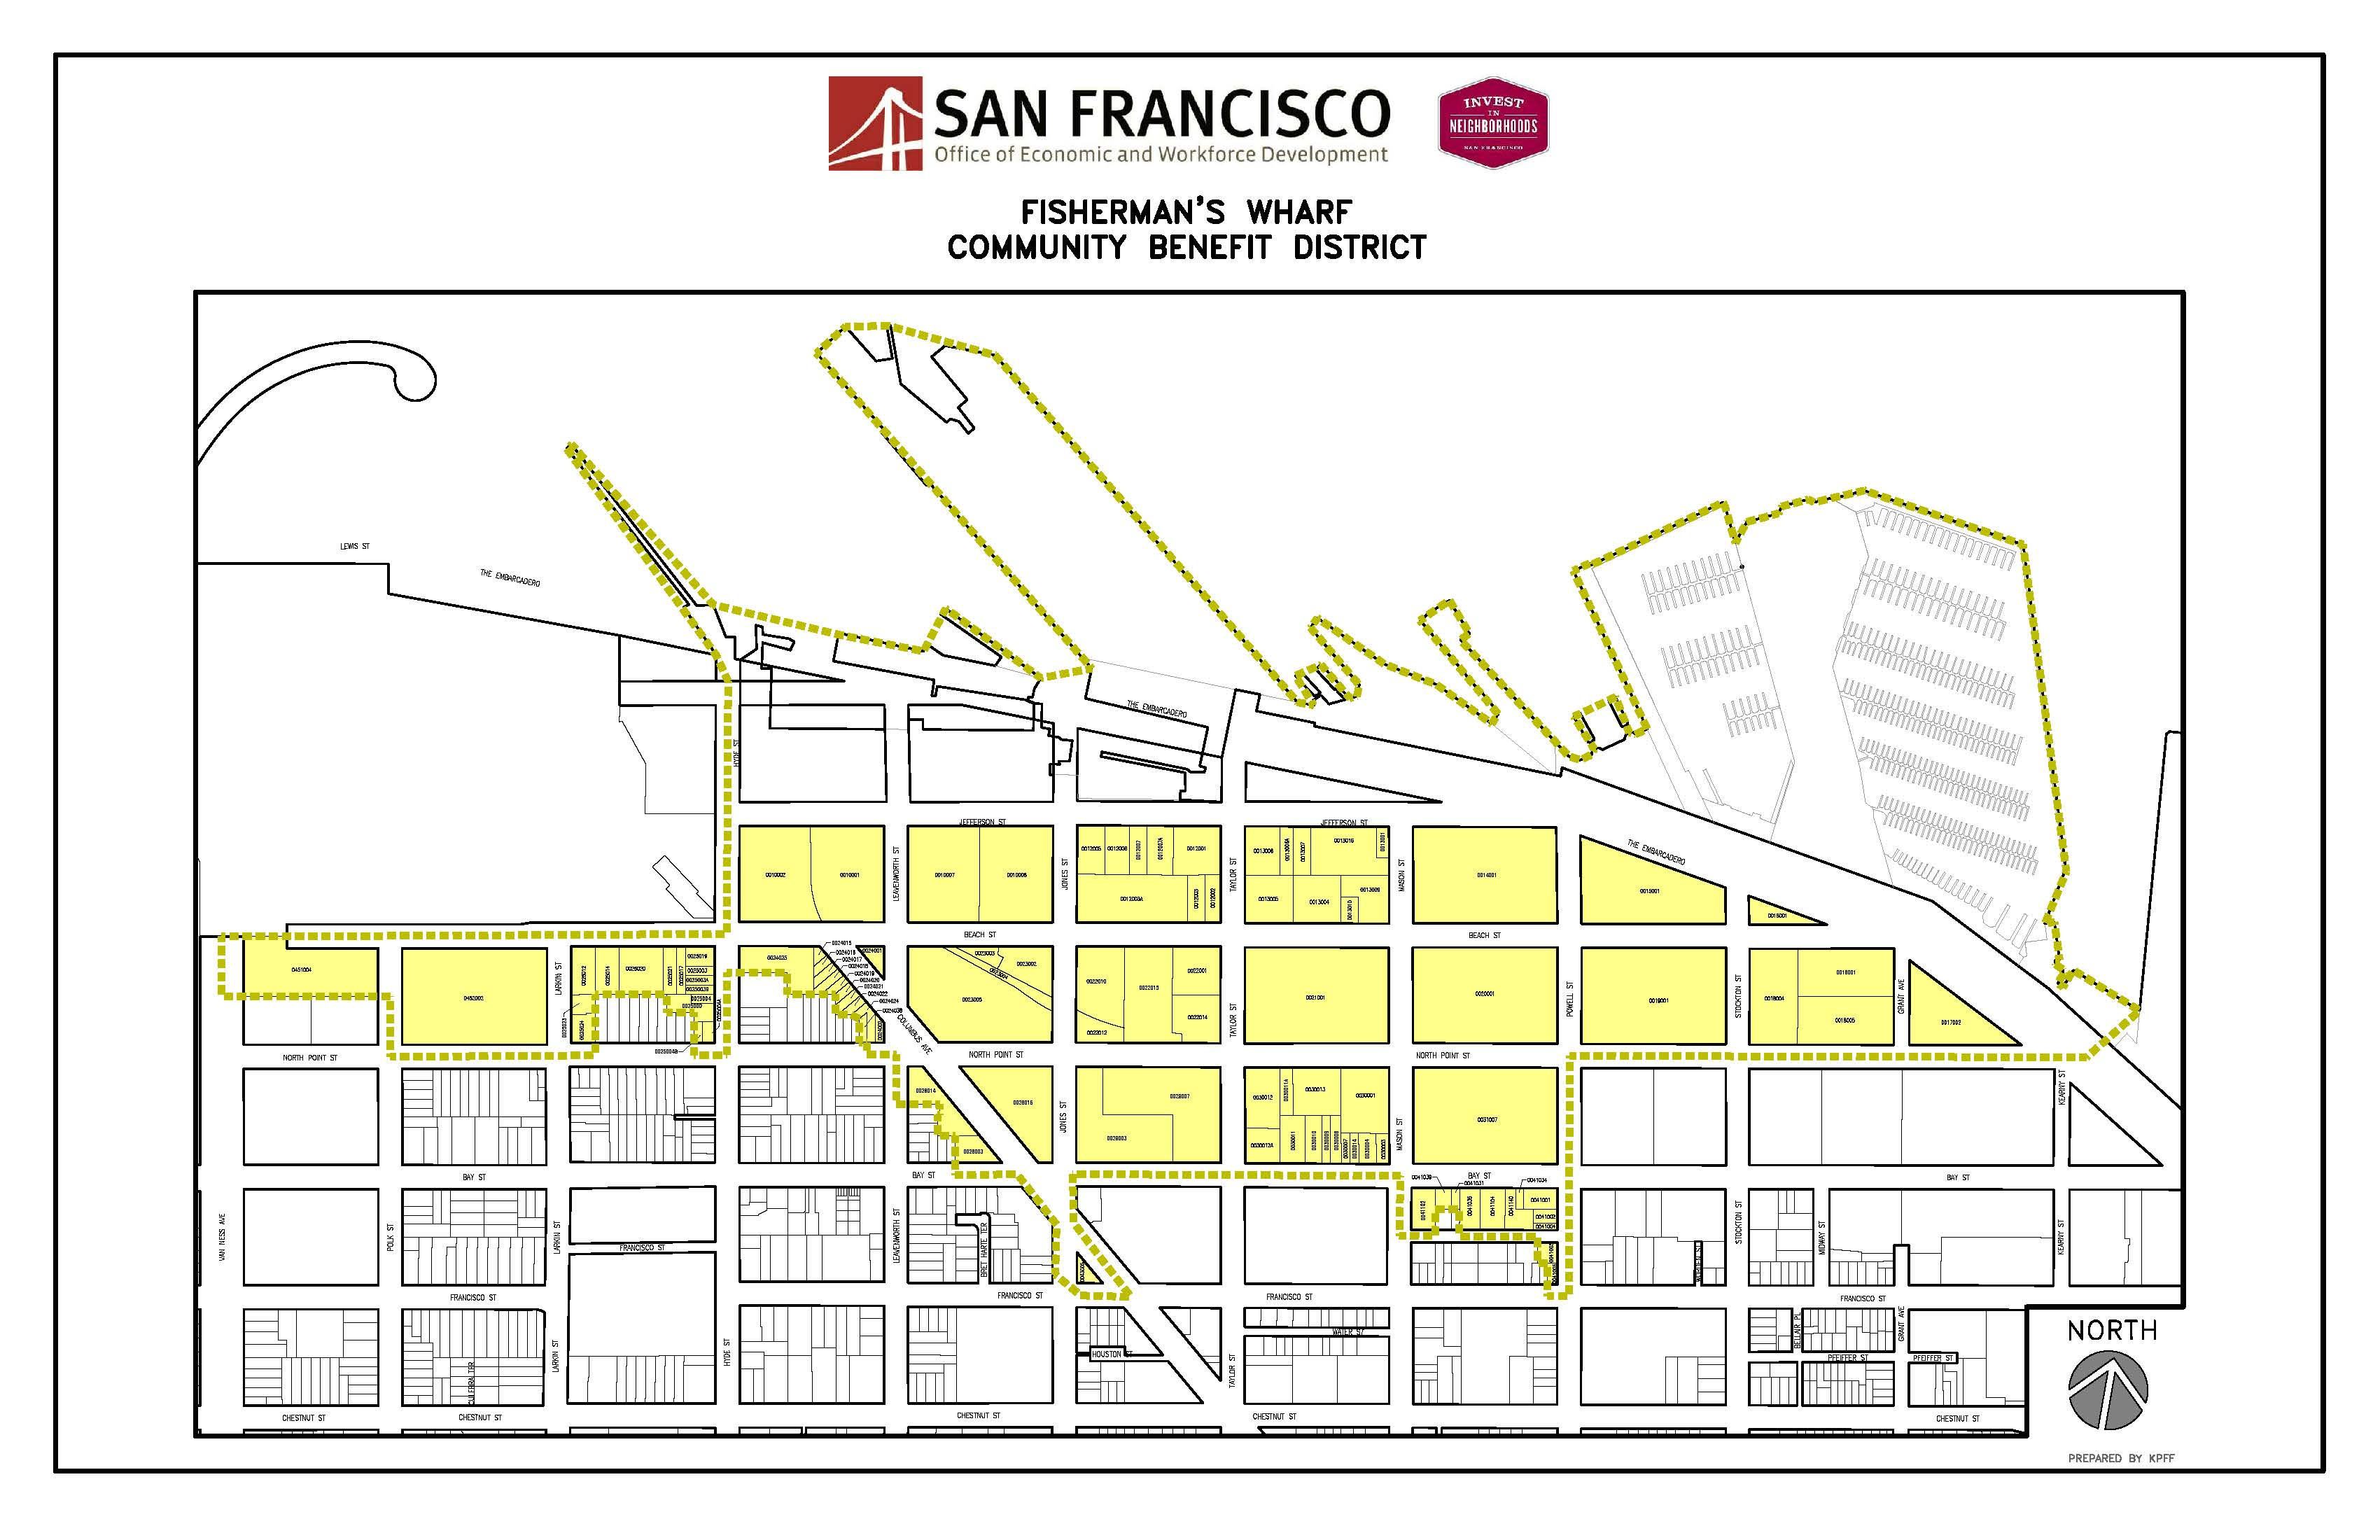 Map of Fisherman's Wharf Community Benefit District